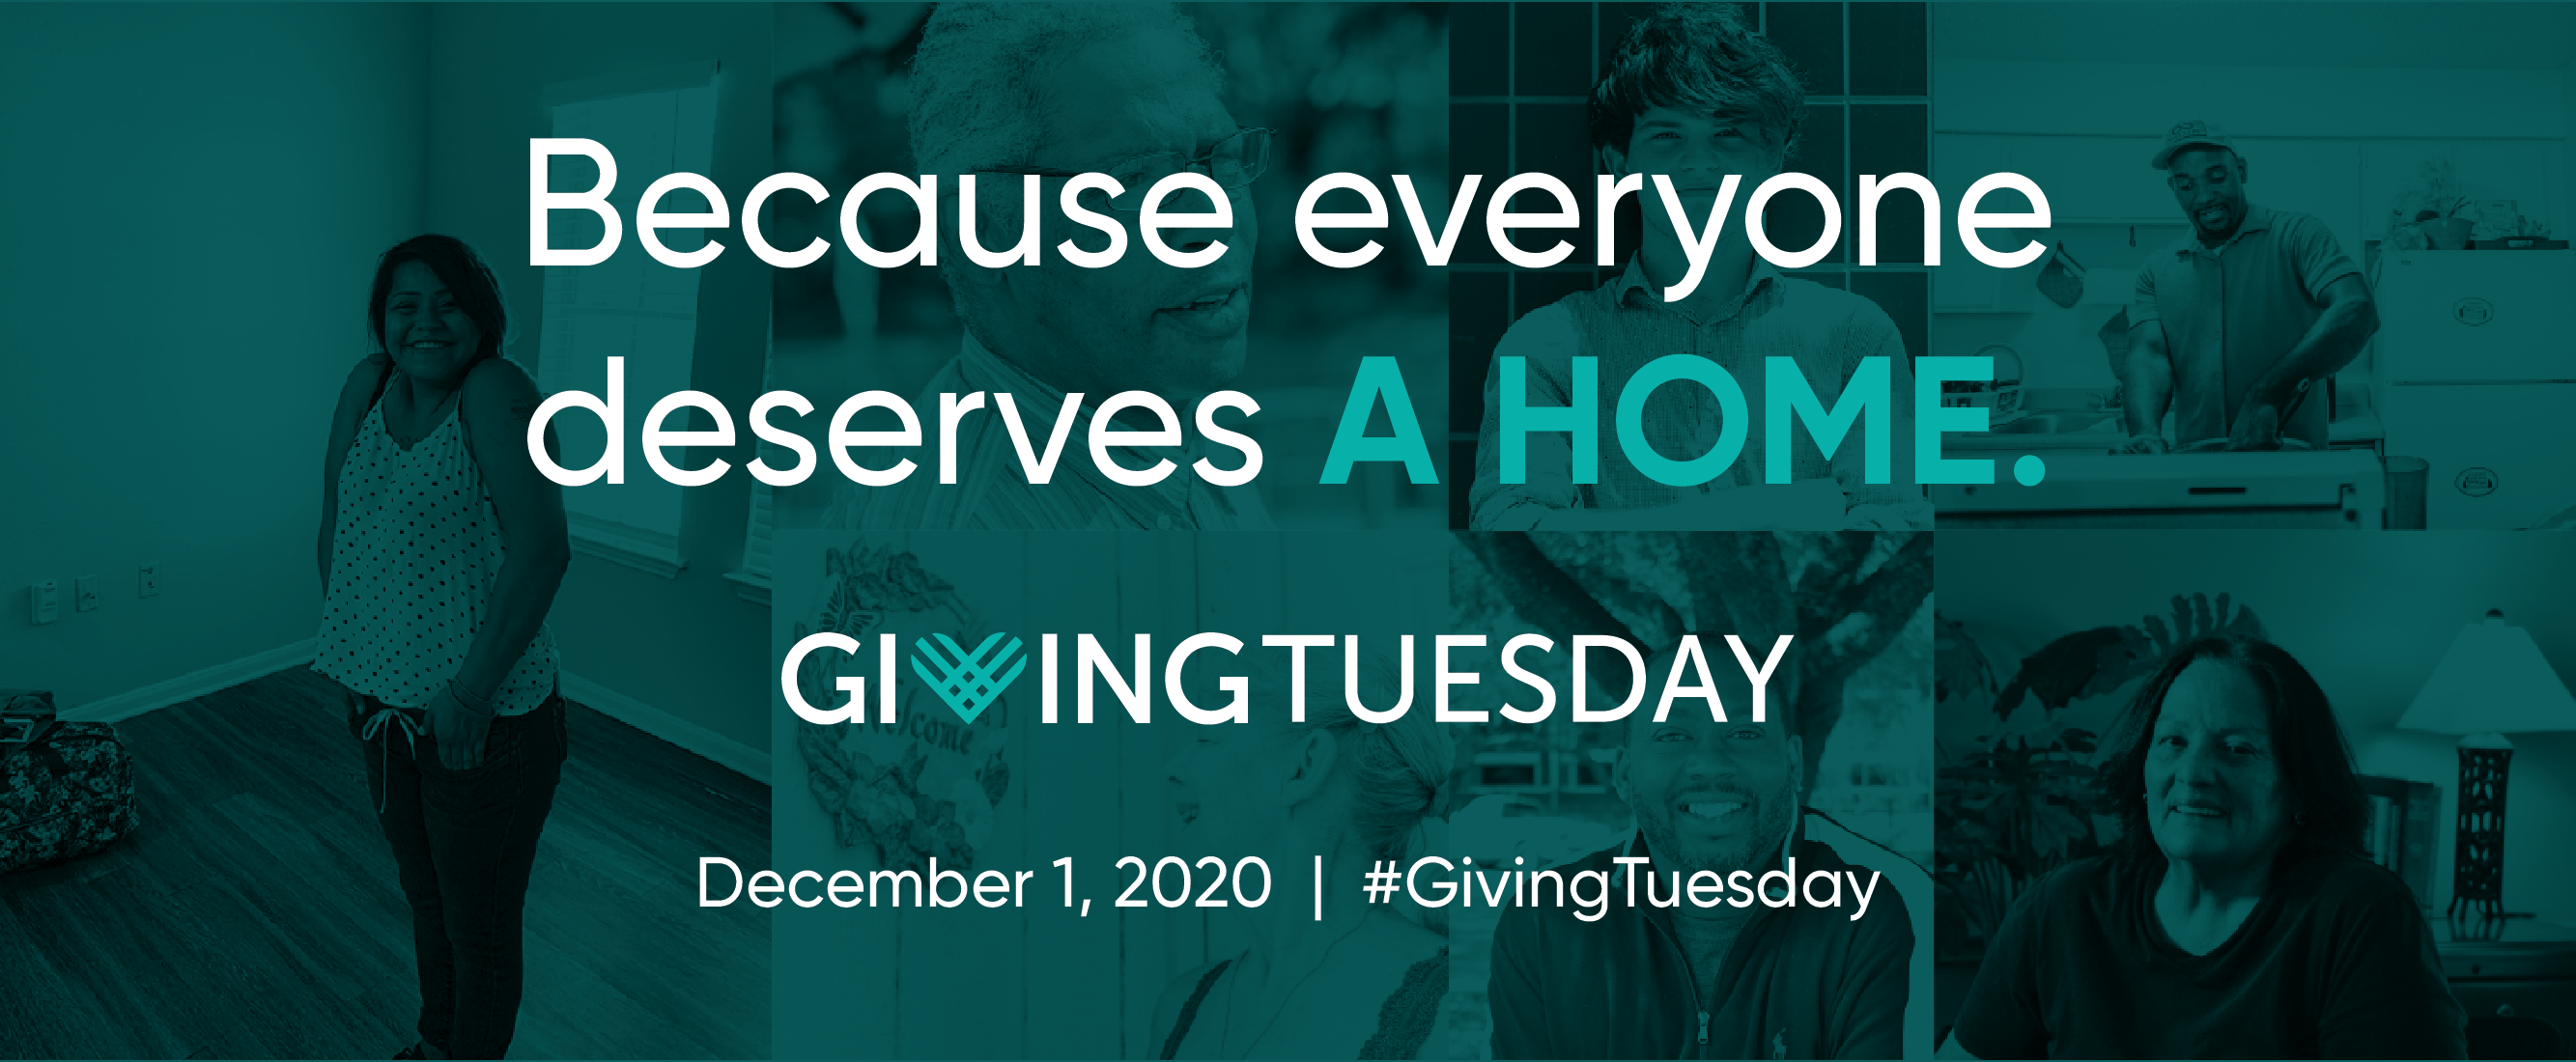 Giving Tuesday: Because everyone deserves a home.